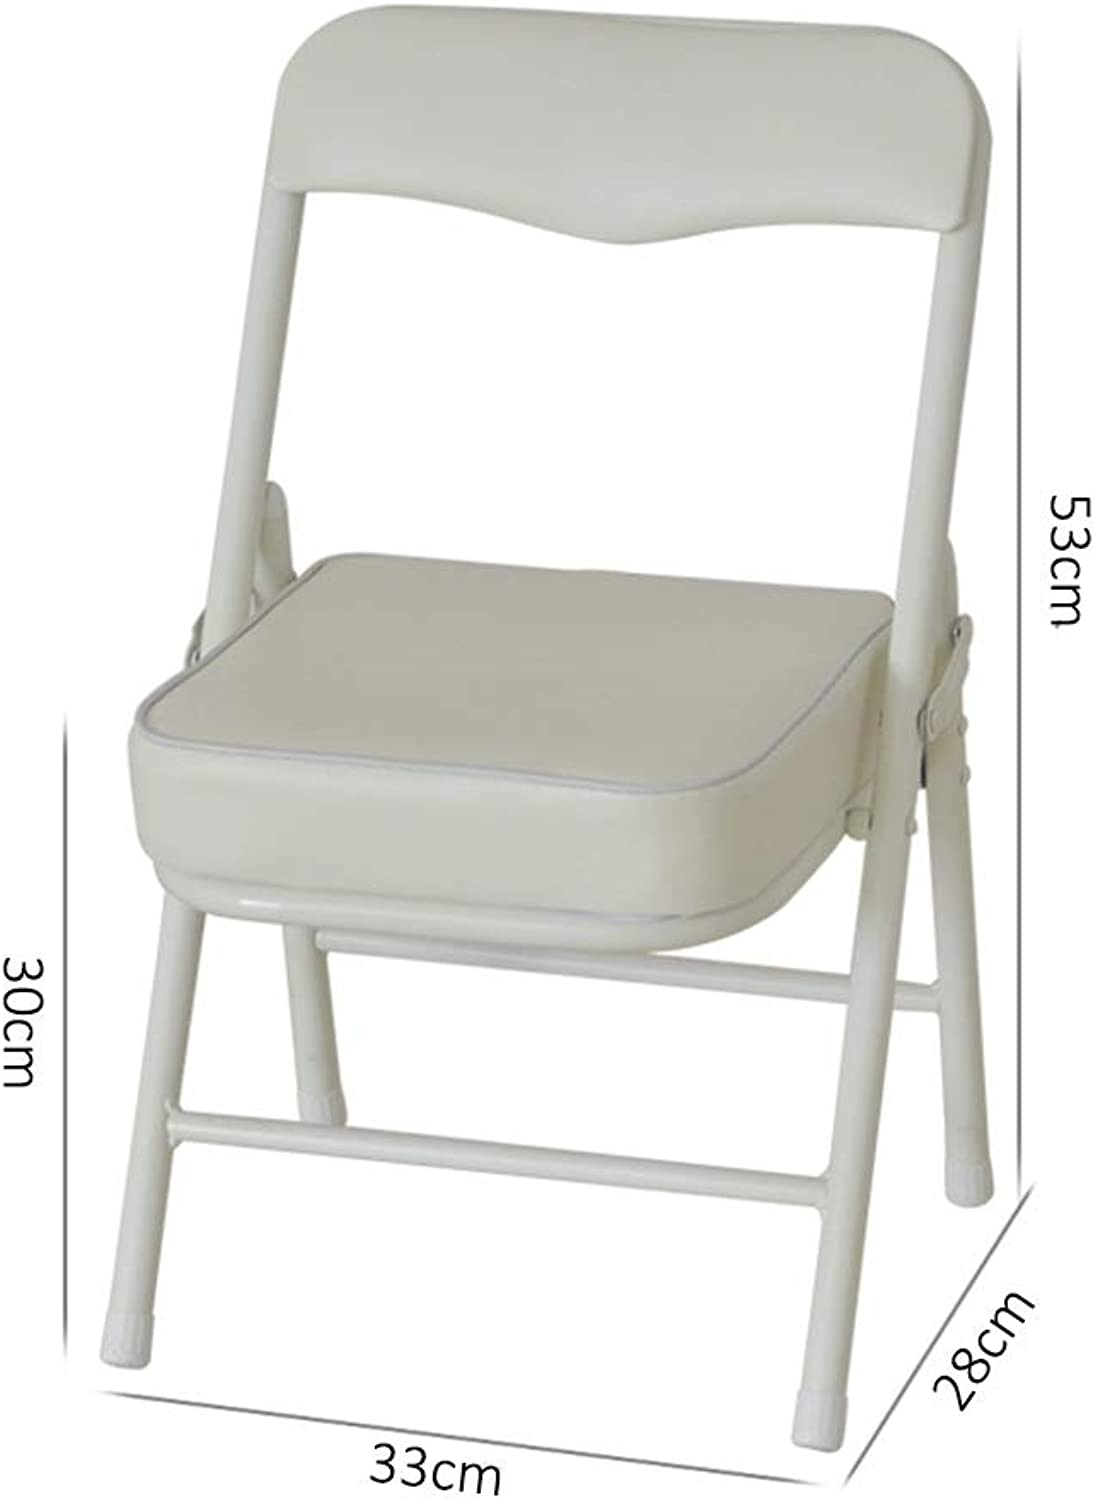 ZHAOYONGLI Footstools,Otools High Strength Foldable Stool Unique and Ergonomic Seat Design (color   White, Size   33  28  53cm)